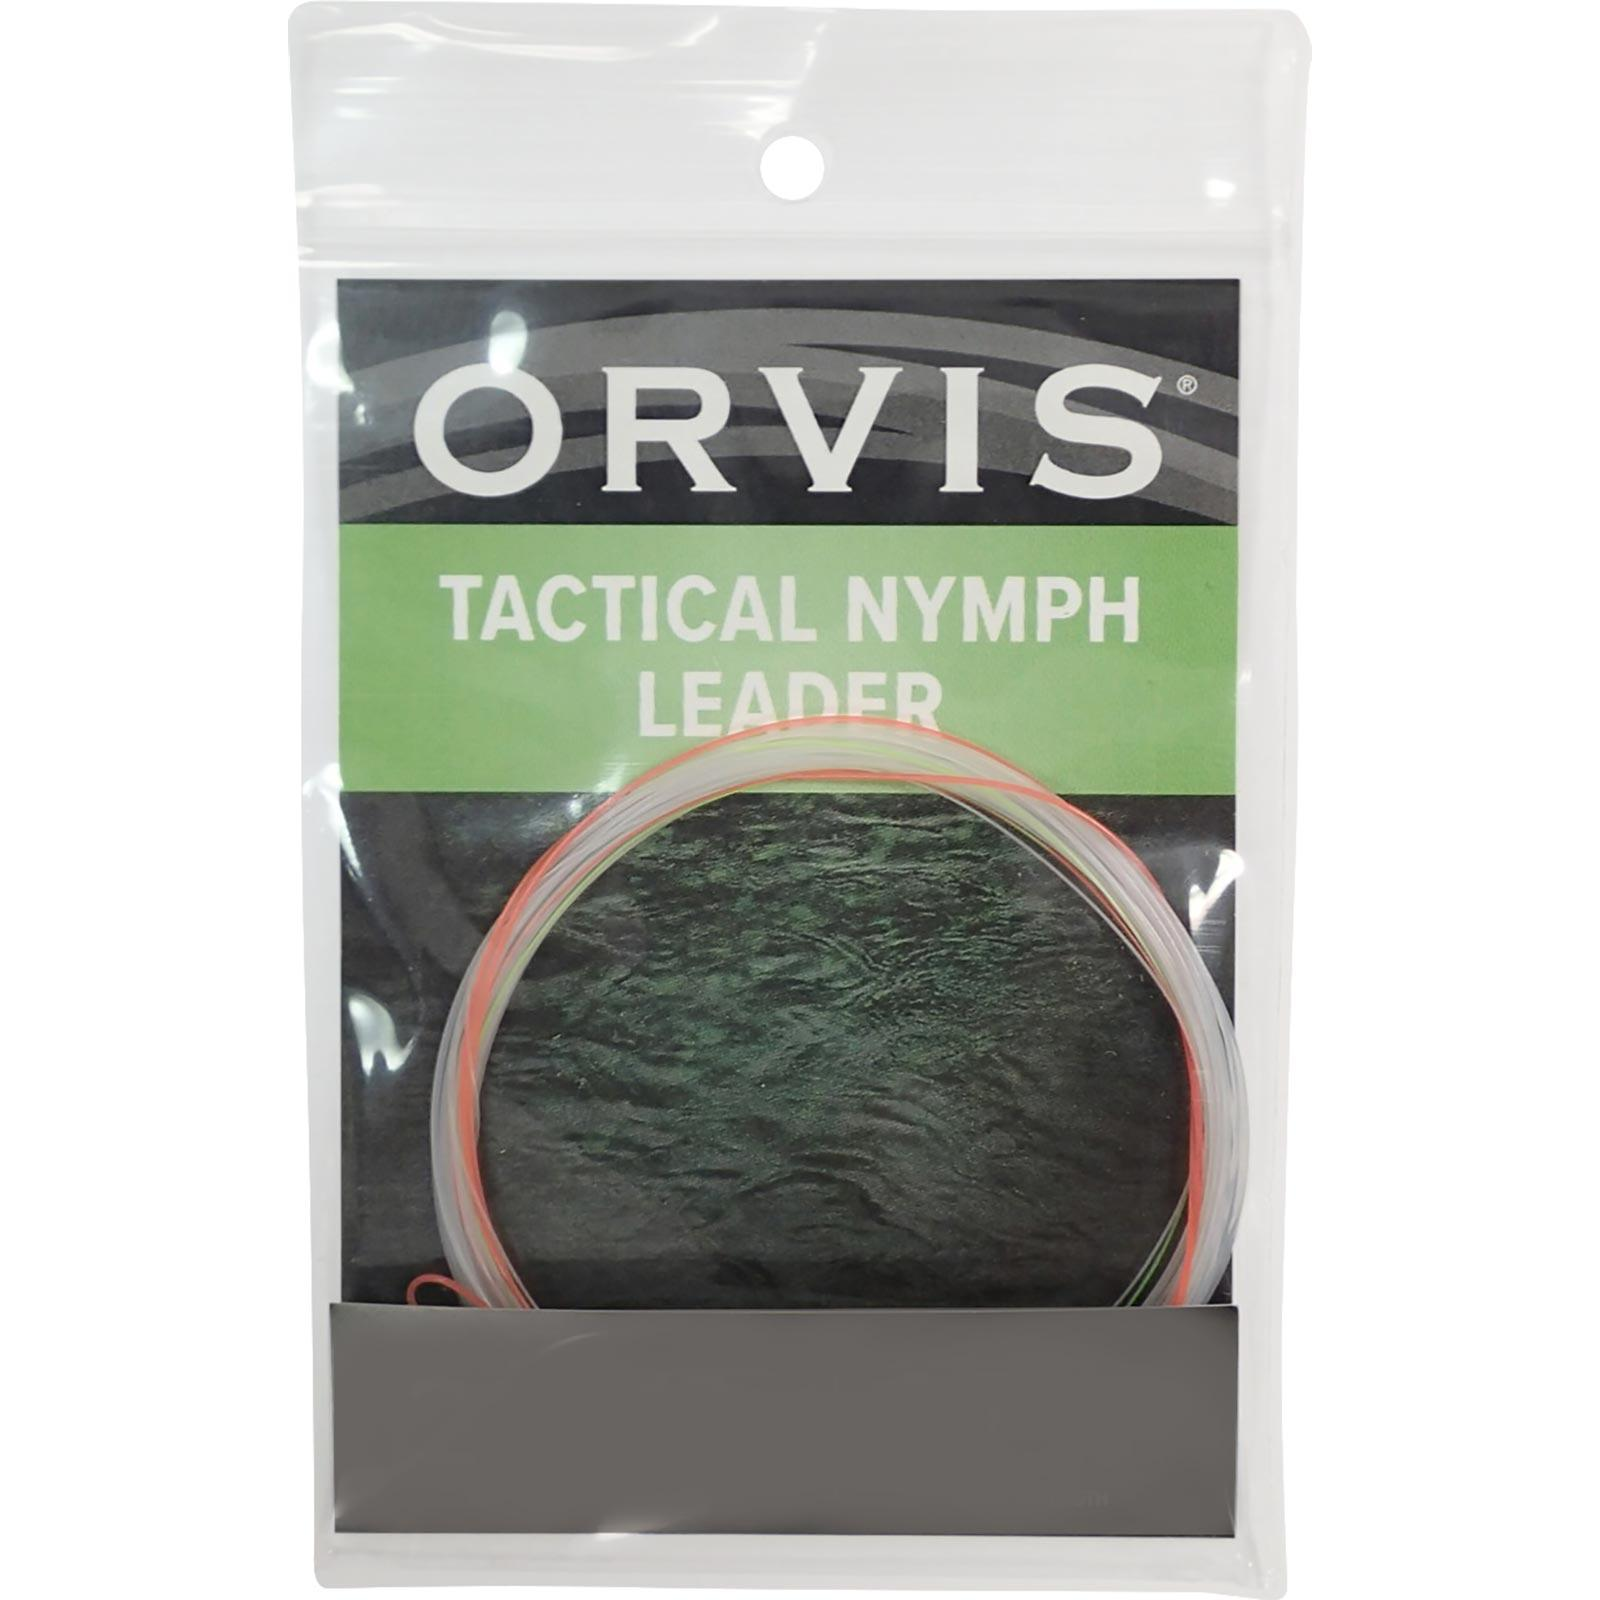 Orvis Tactical Nymph Leader